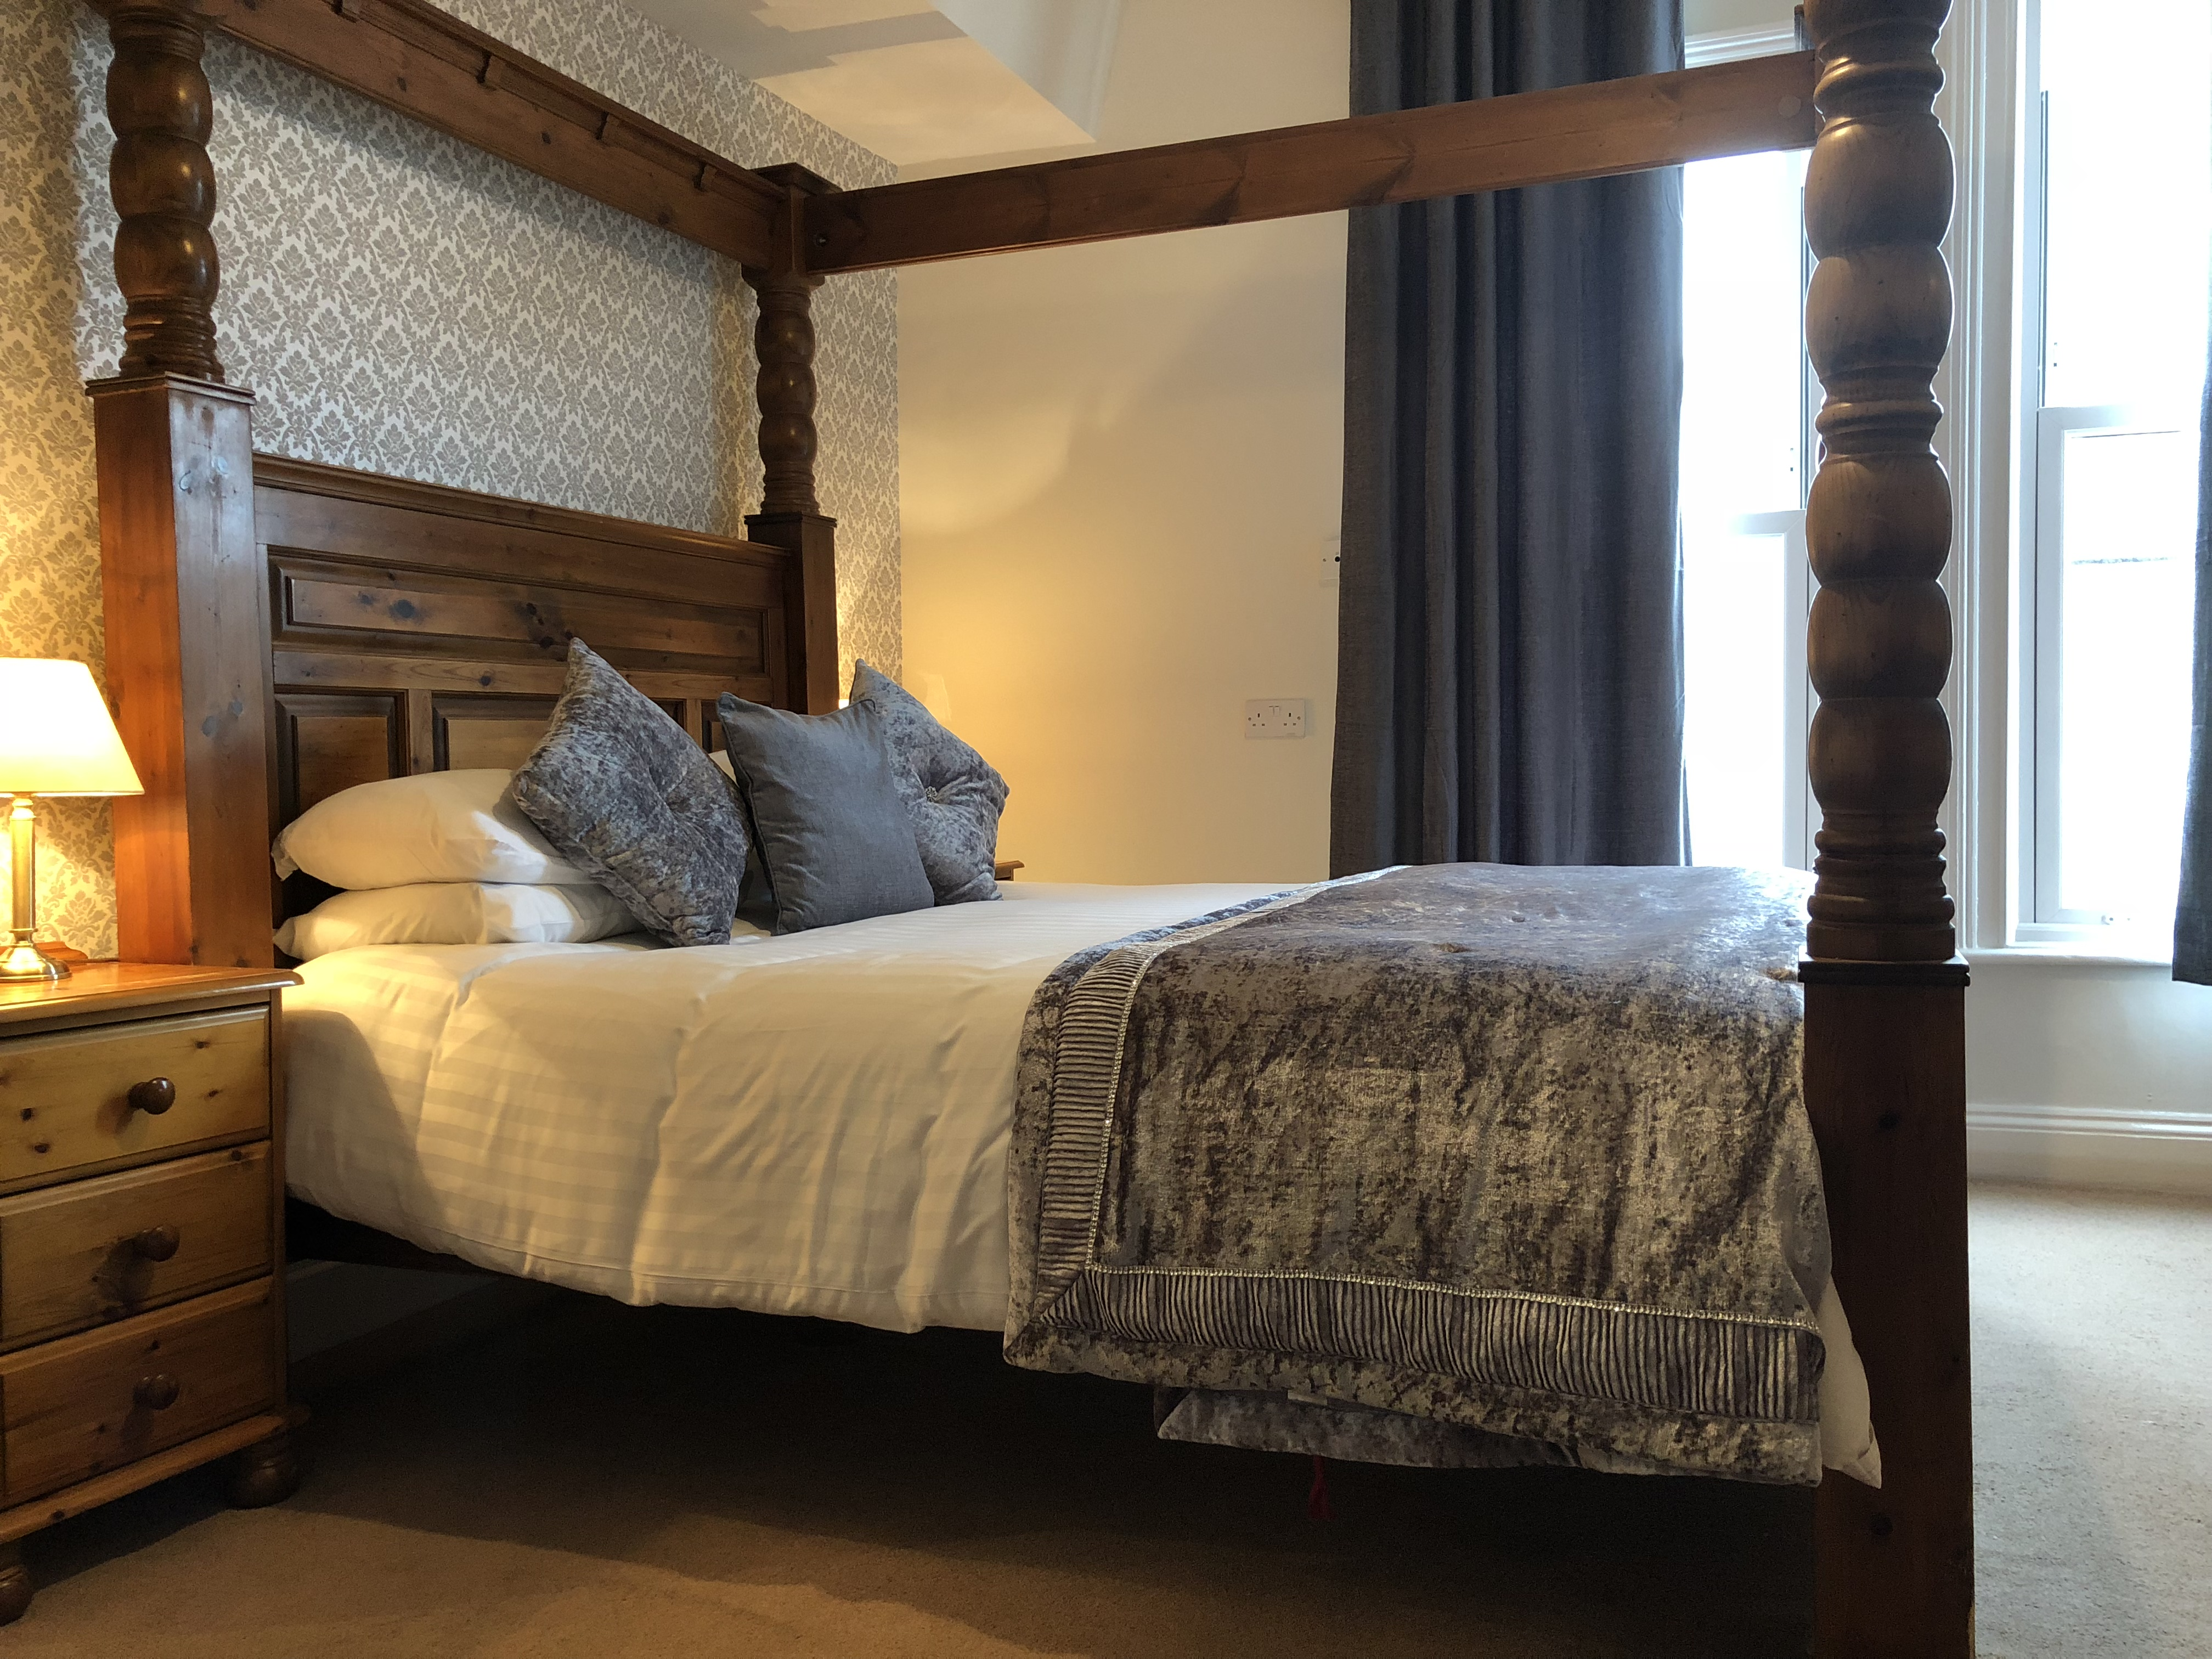 Camere Con Letto A Baldacchino : Double room with four poster bed the york priory bed breakfast